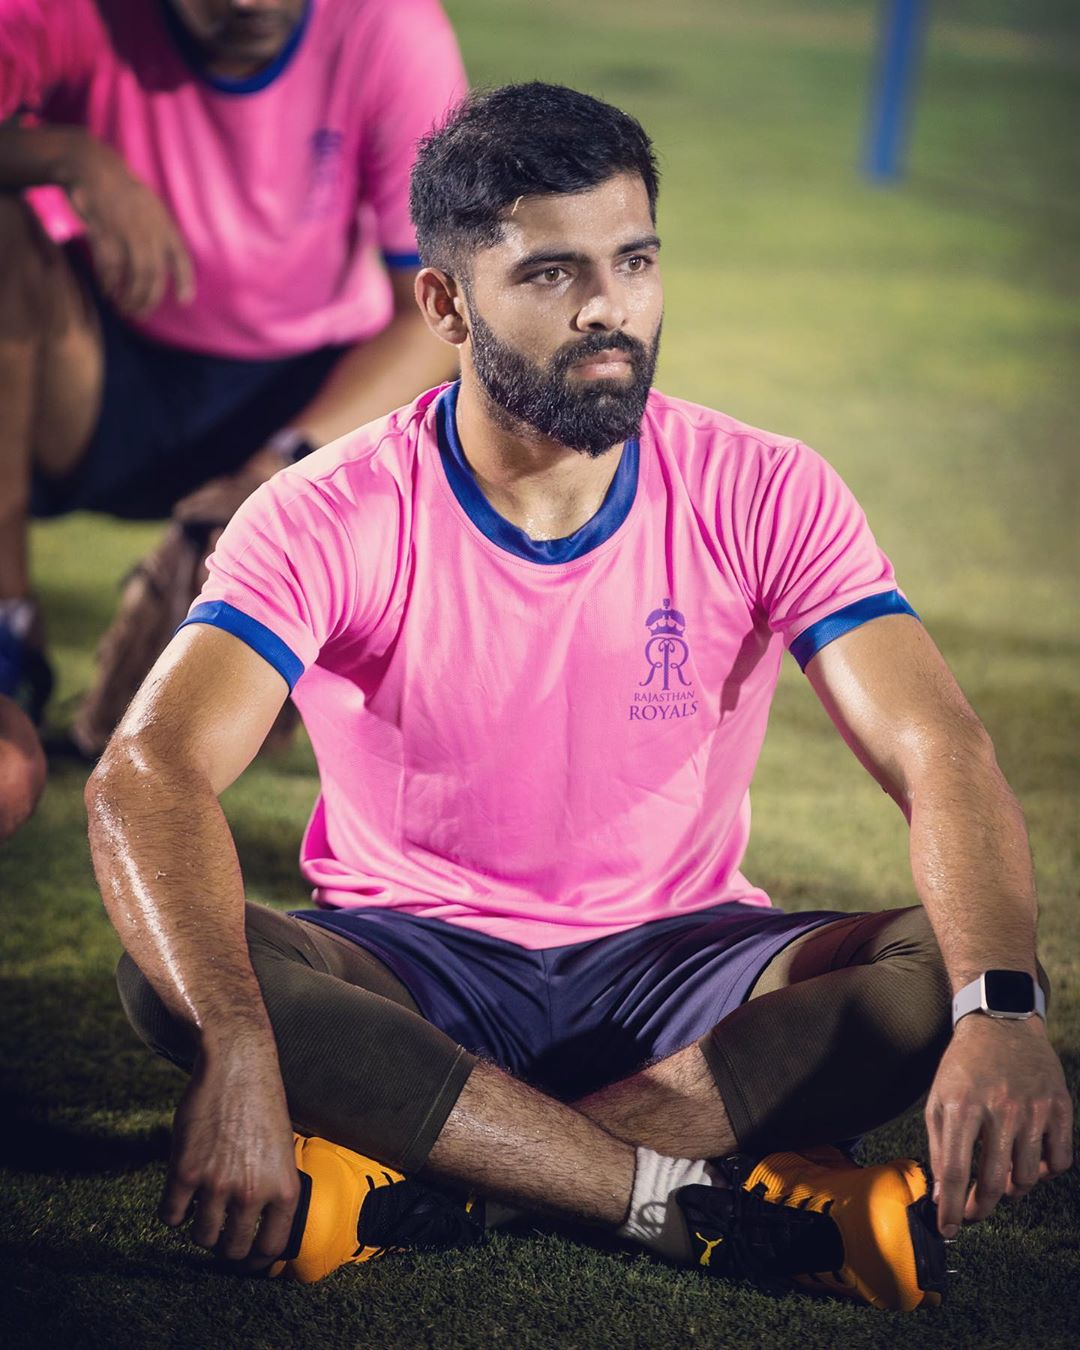 Manan Vohra Profile Photo - Rajasthan Royals Cricketer Mahipal Lomror Info, ICC Ranking, Records, Wiki, Family along with latest Images and News.